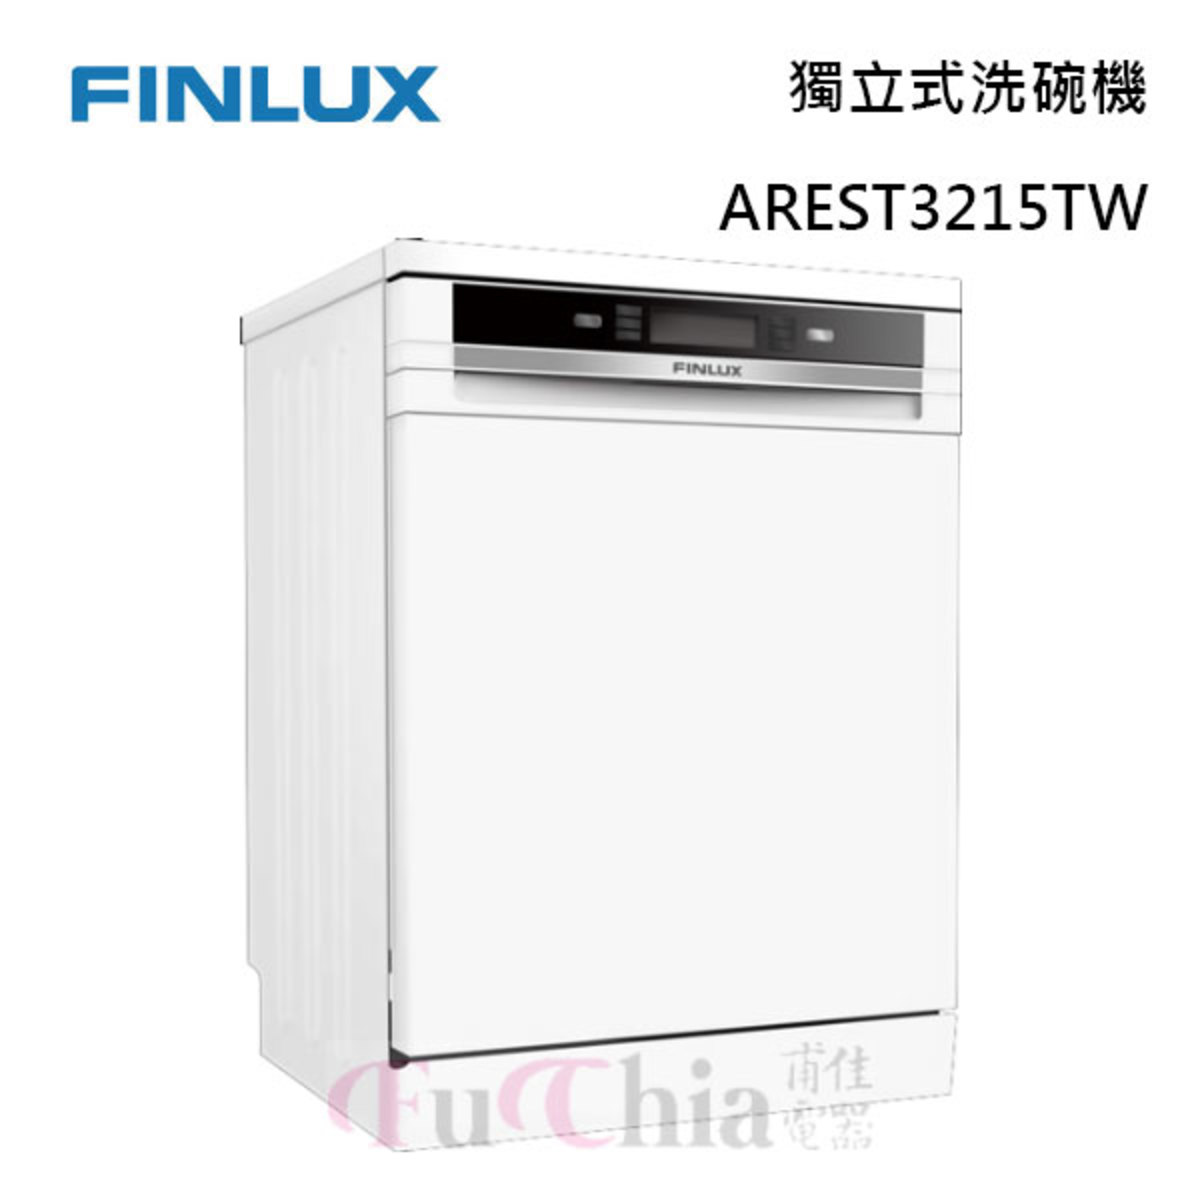 FINLUX AREST3215TW 獨立式 洗碗機 15人份